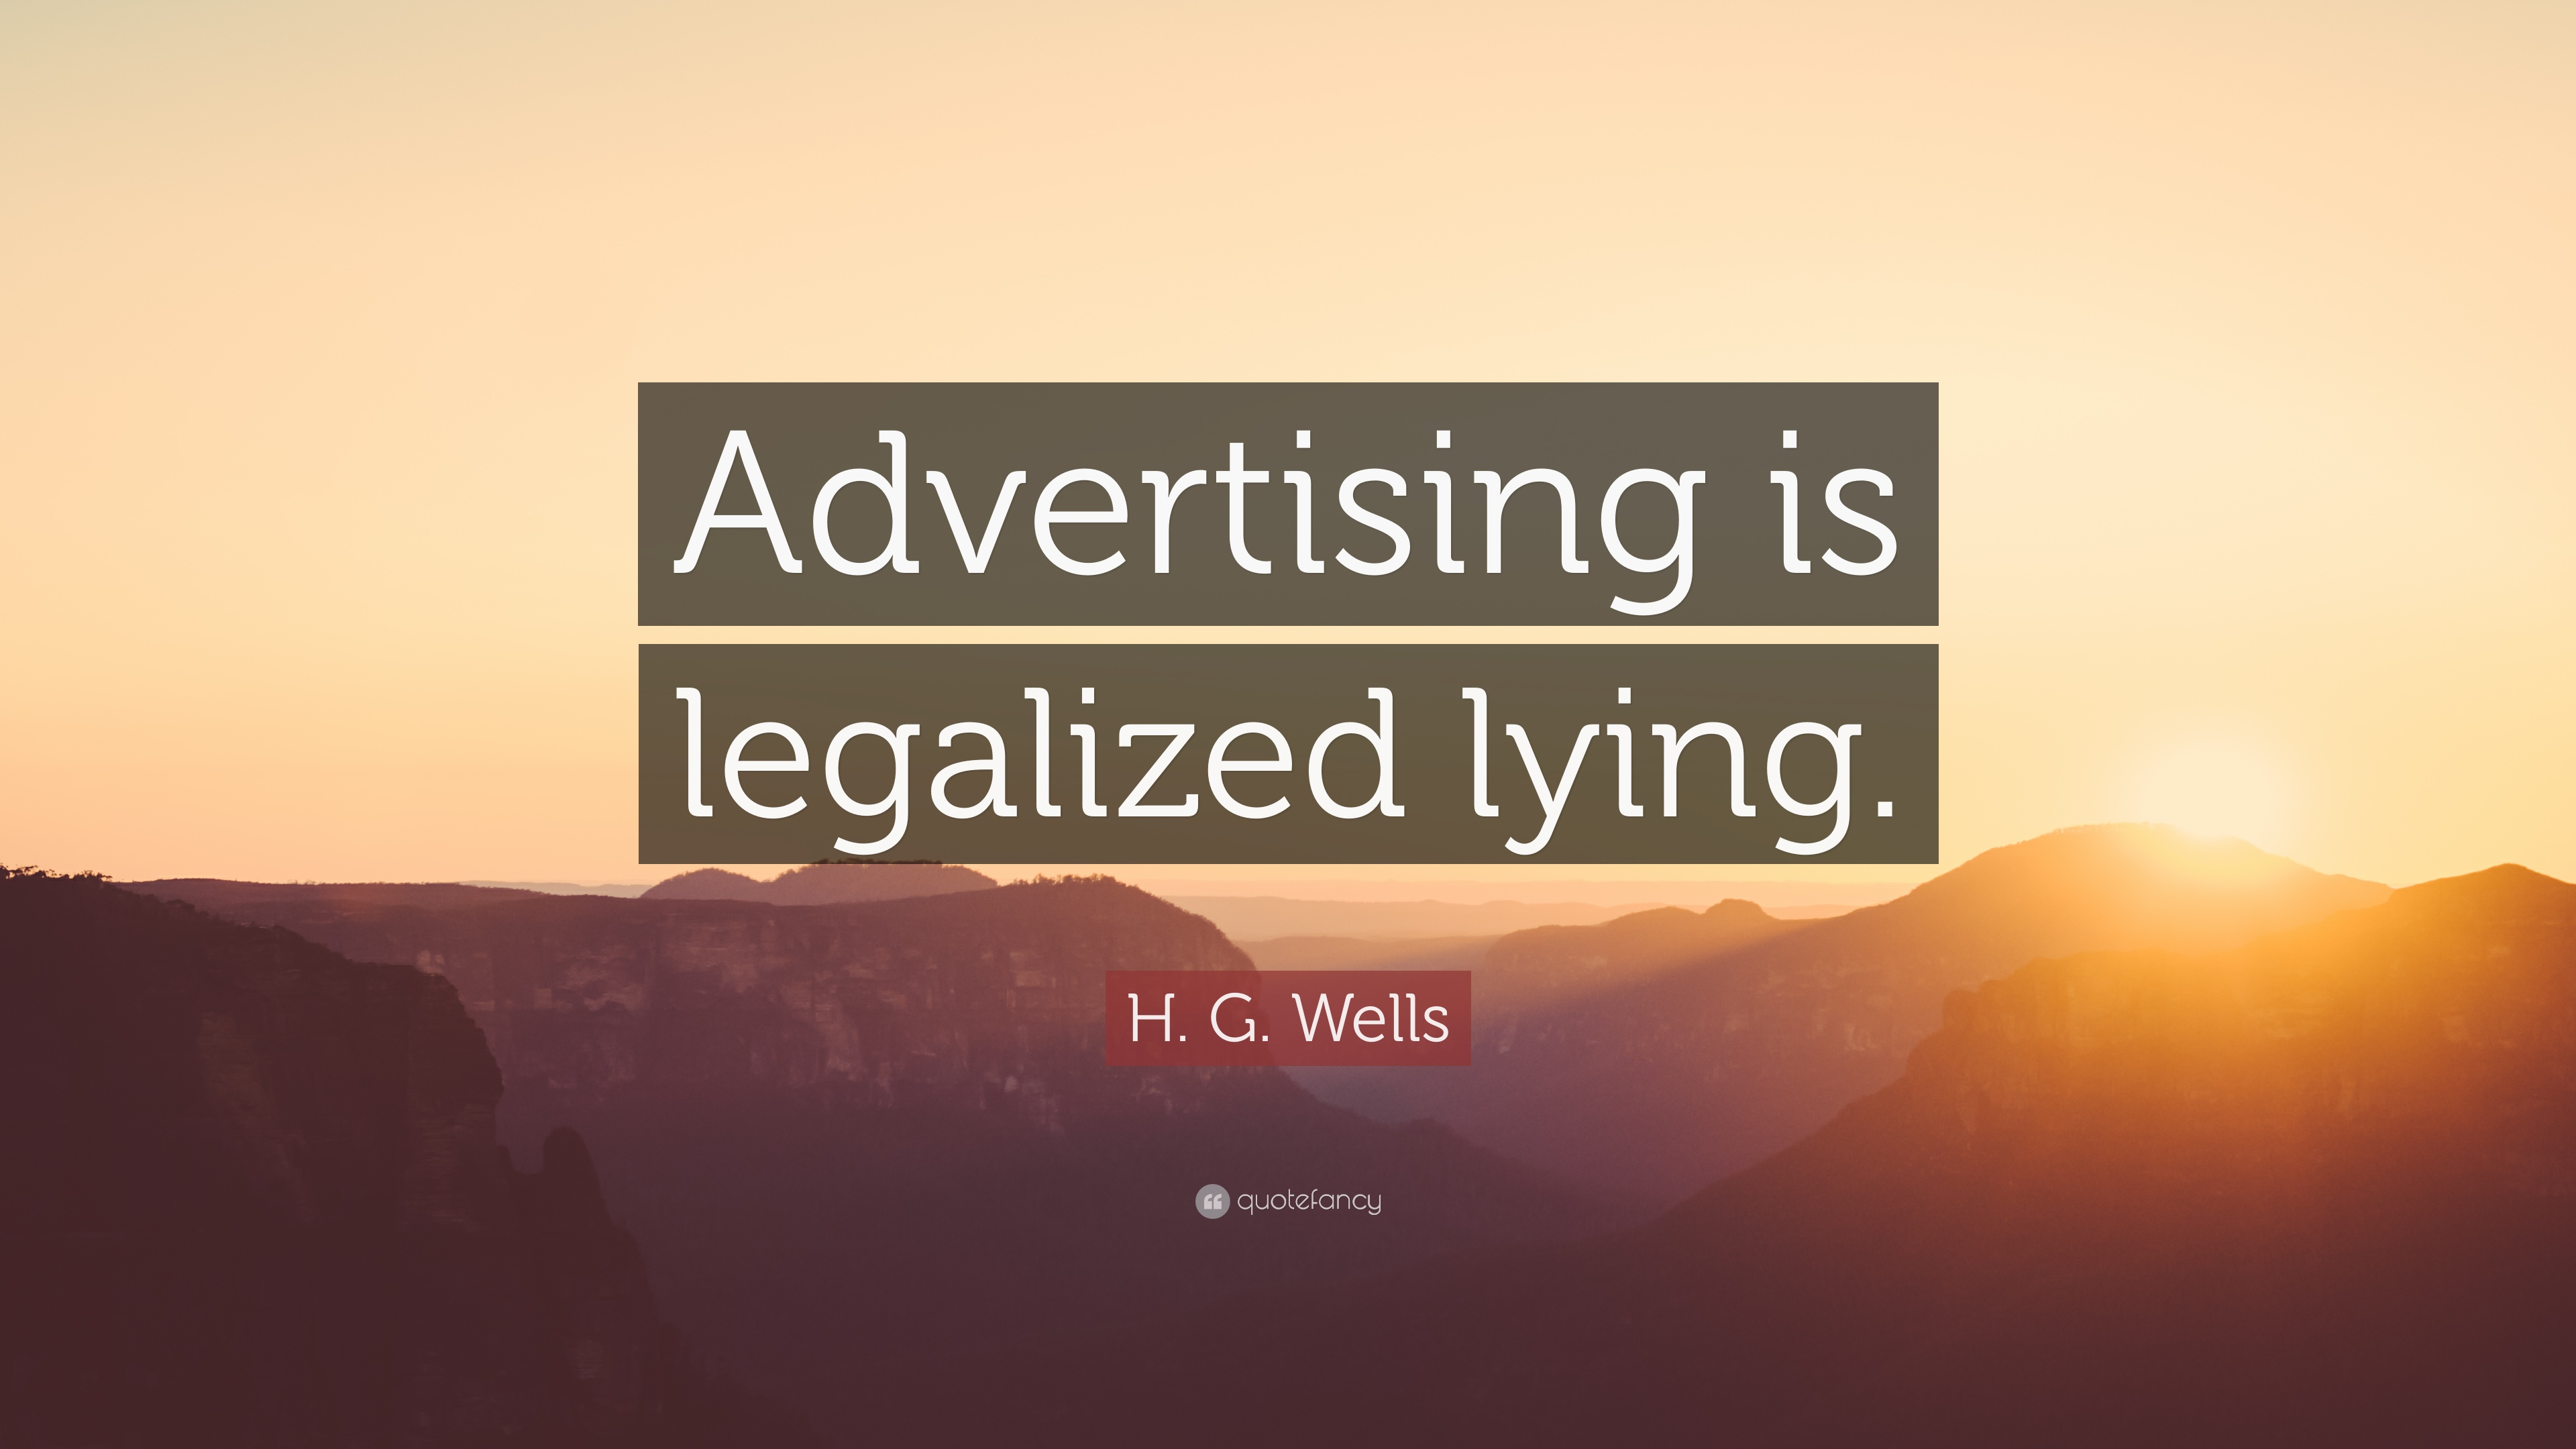 Advertising is a legalized form of lying Essay Sample